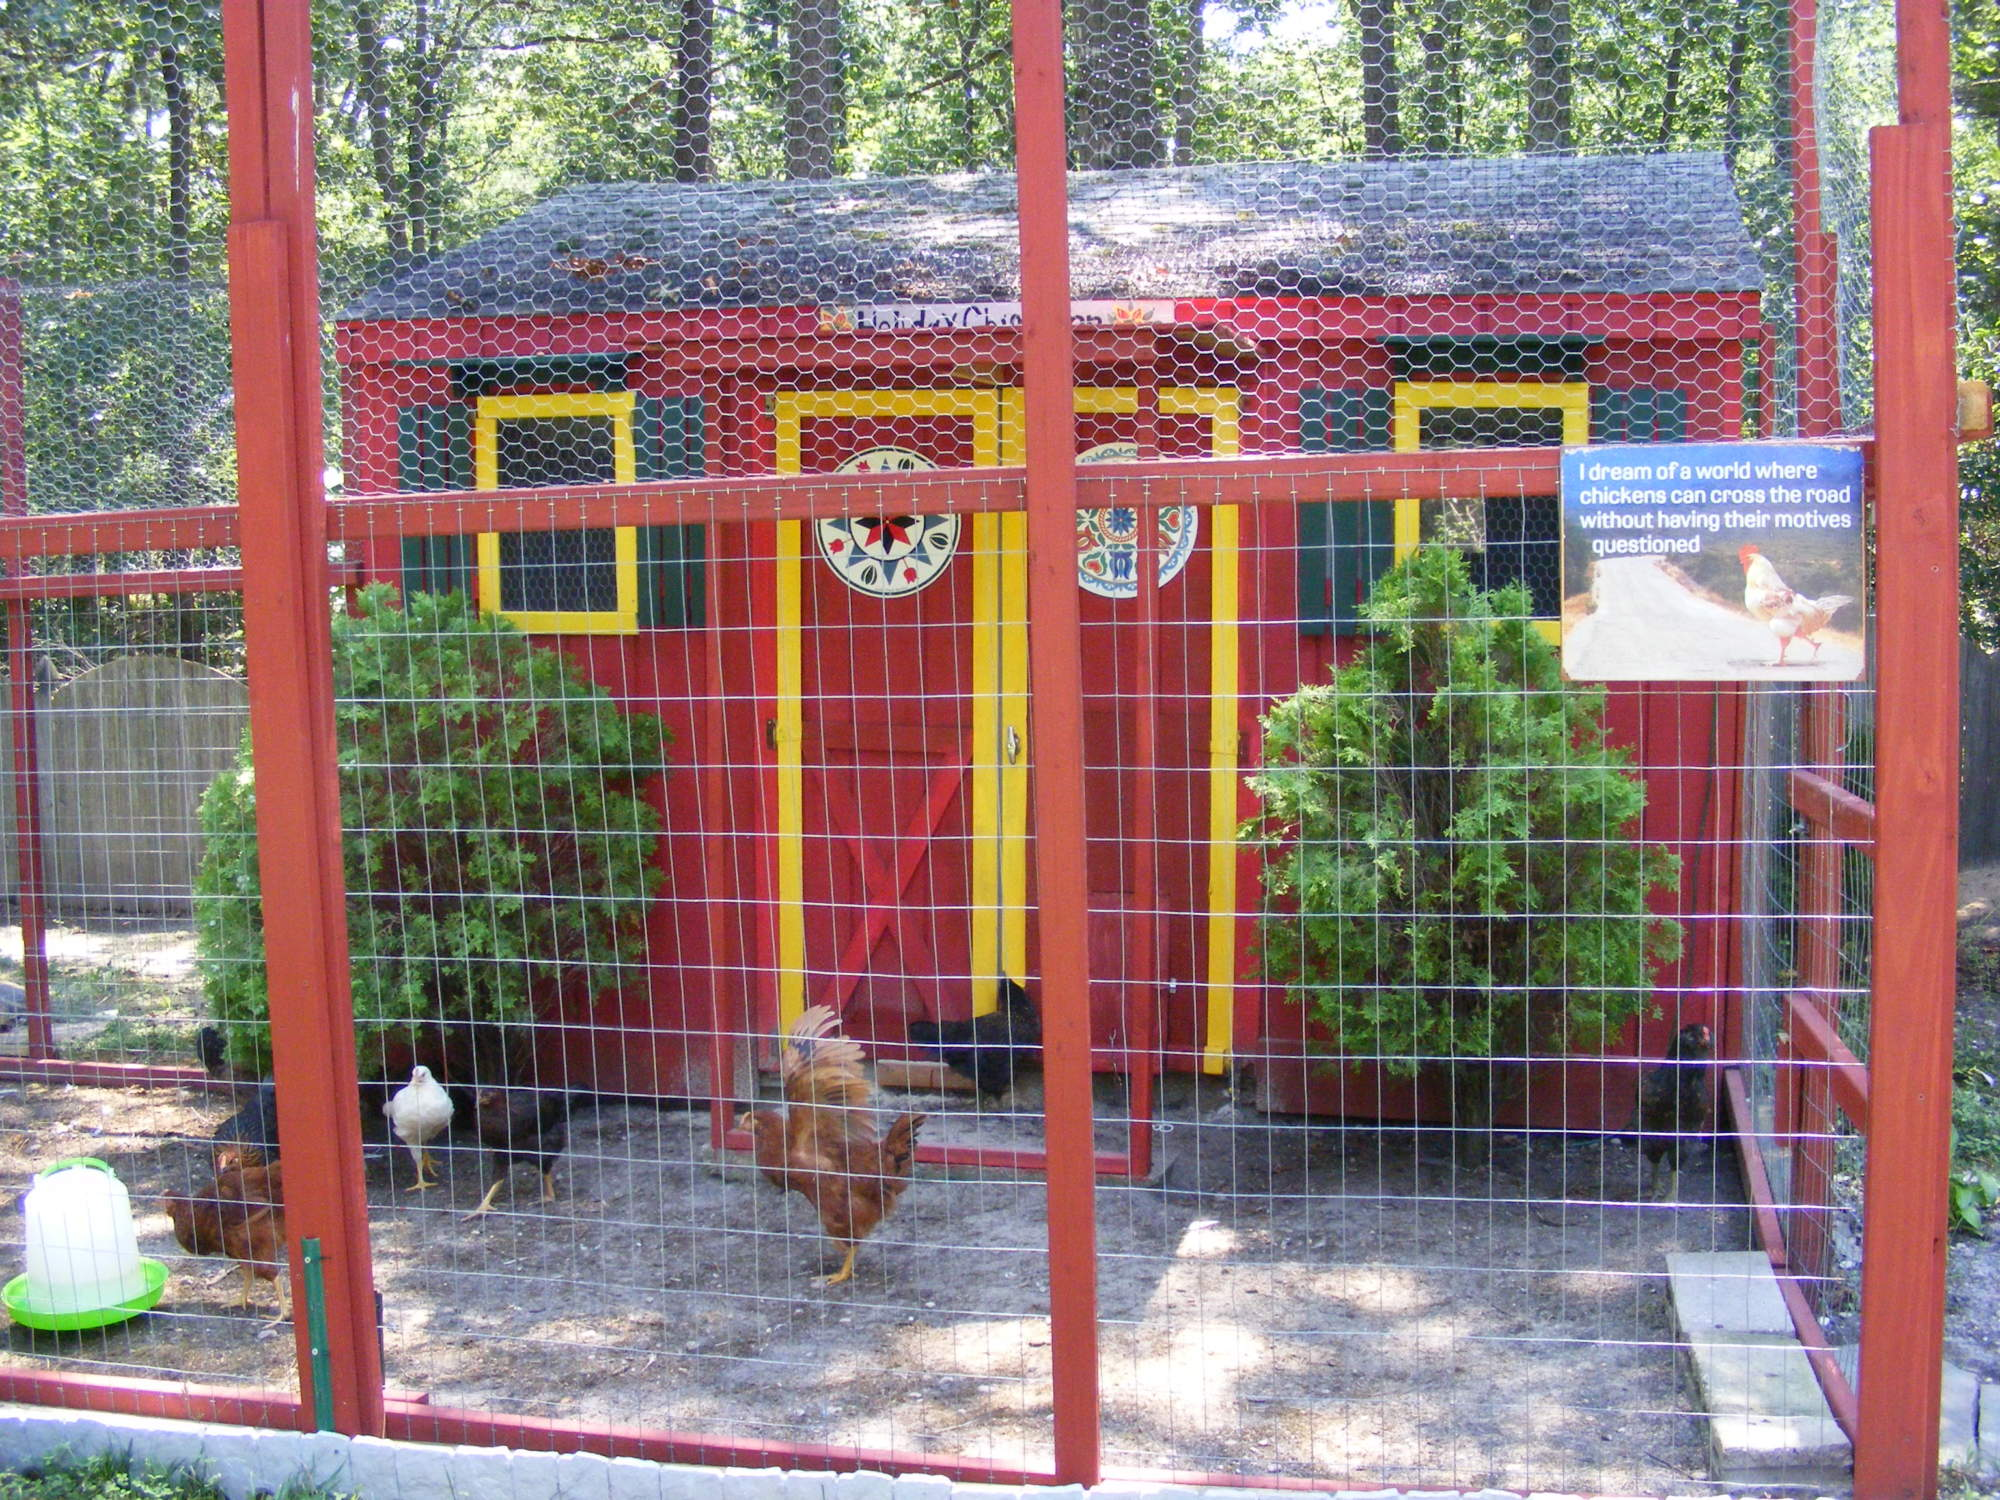 holiday inn backyard chickens